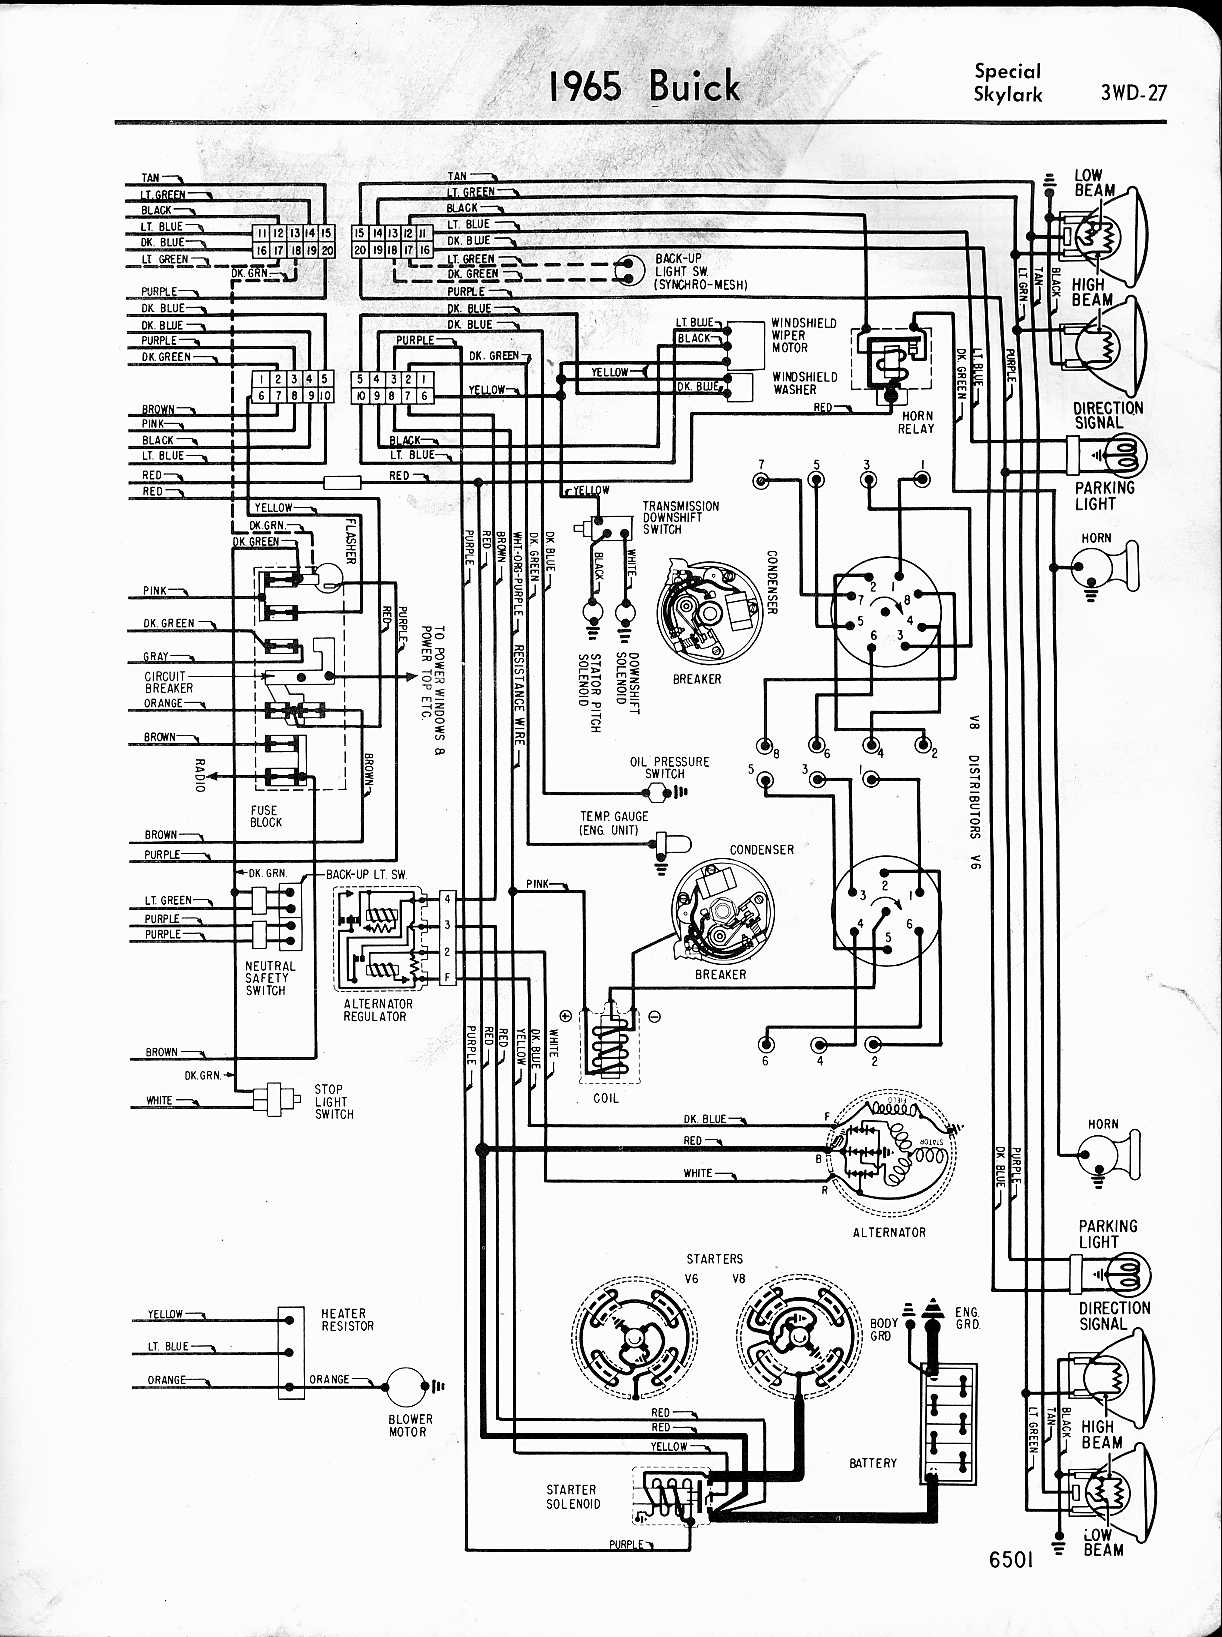 72 buick gs wiring diagram wiring library 1972 buick gs 72 buick gs wiring diagram [ 1222 x 1637 Pixel ]